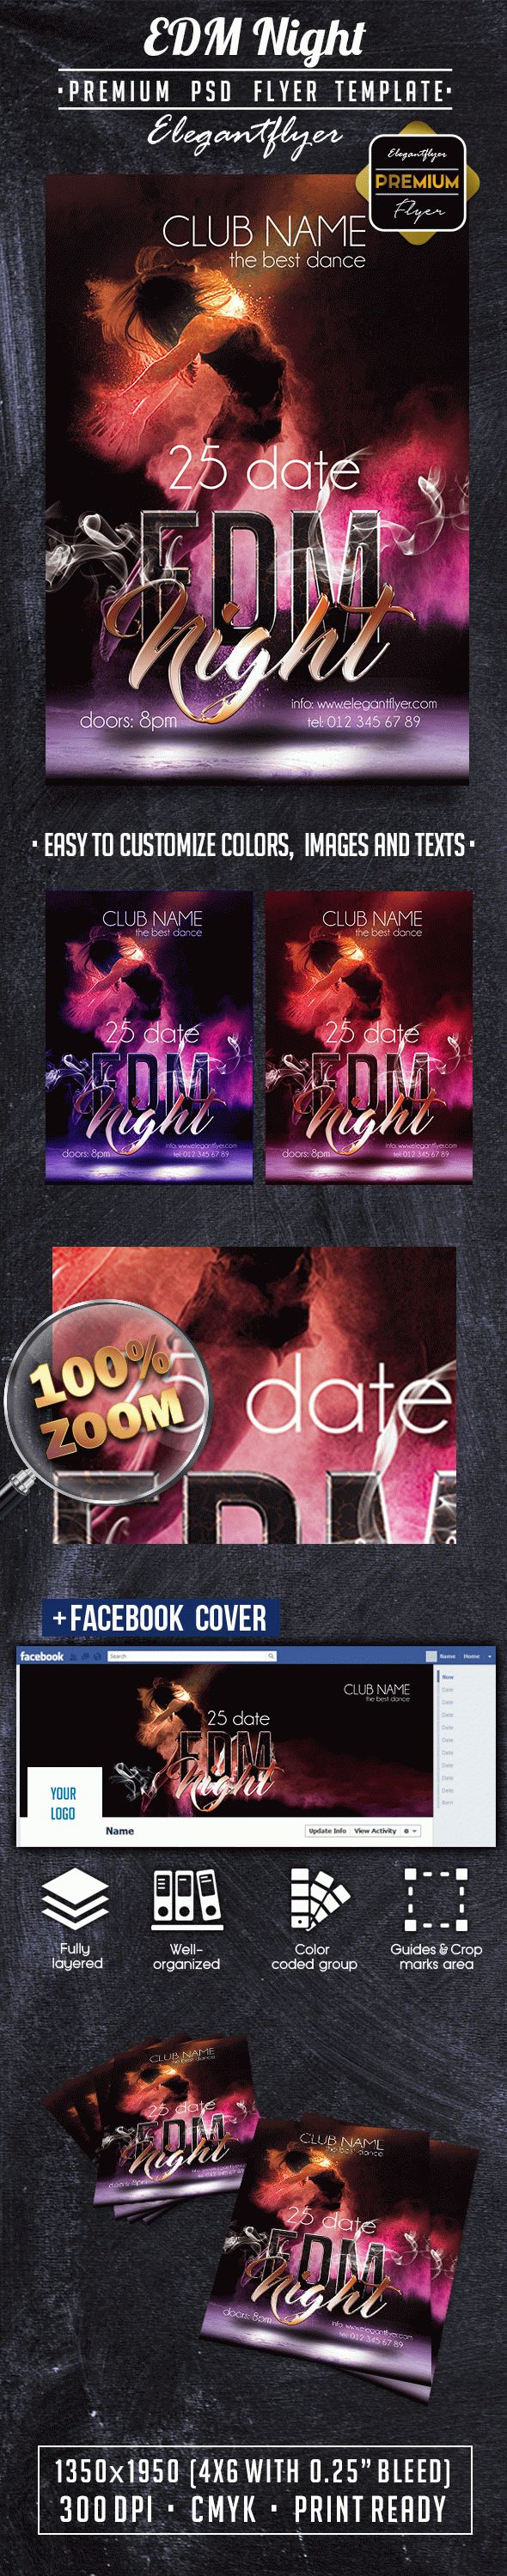 EDM Night PREMIUM Flyer PSD Template + Facebook Cover